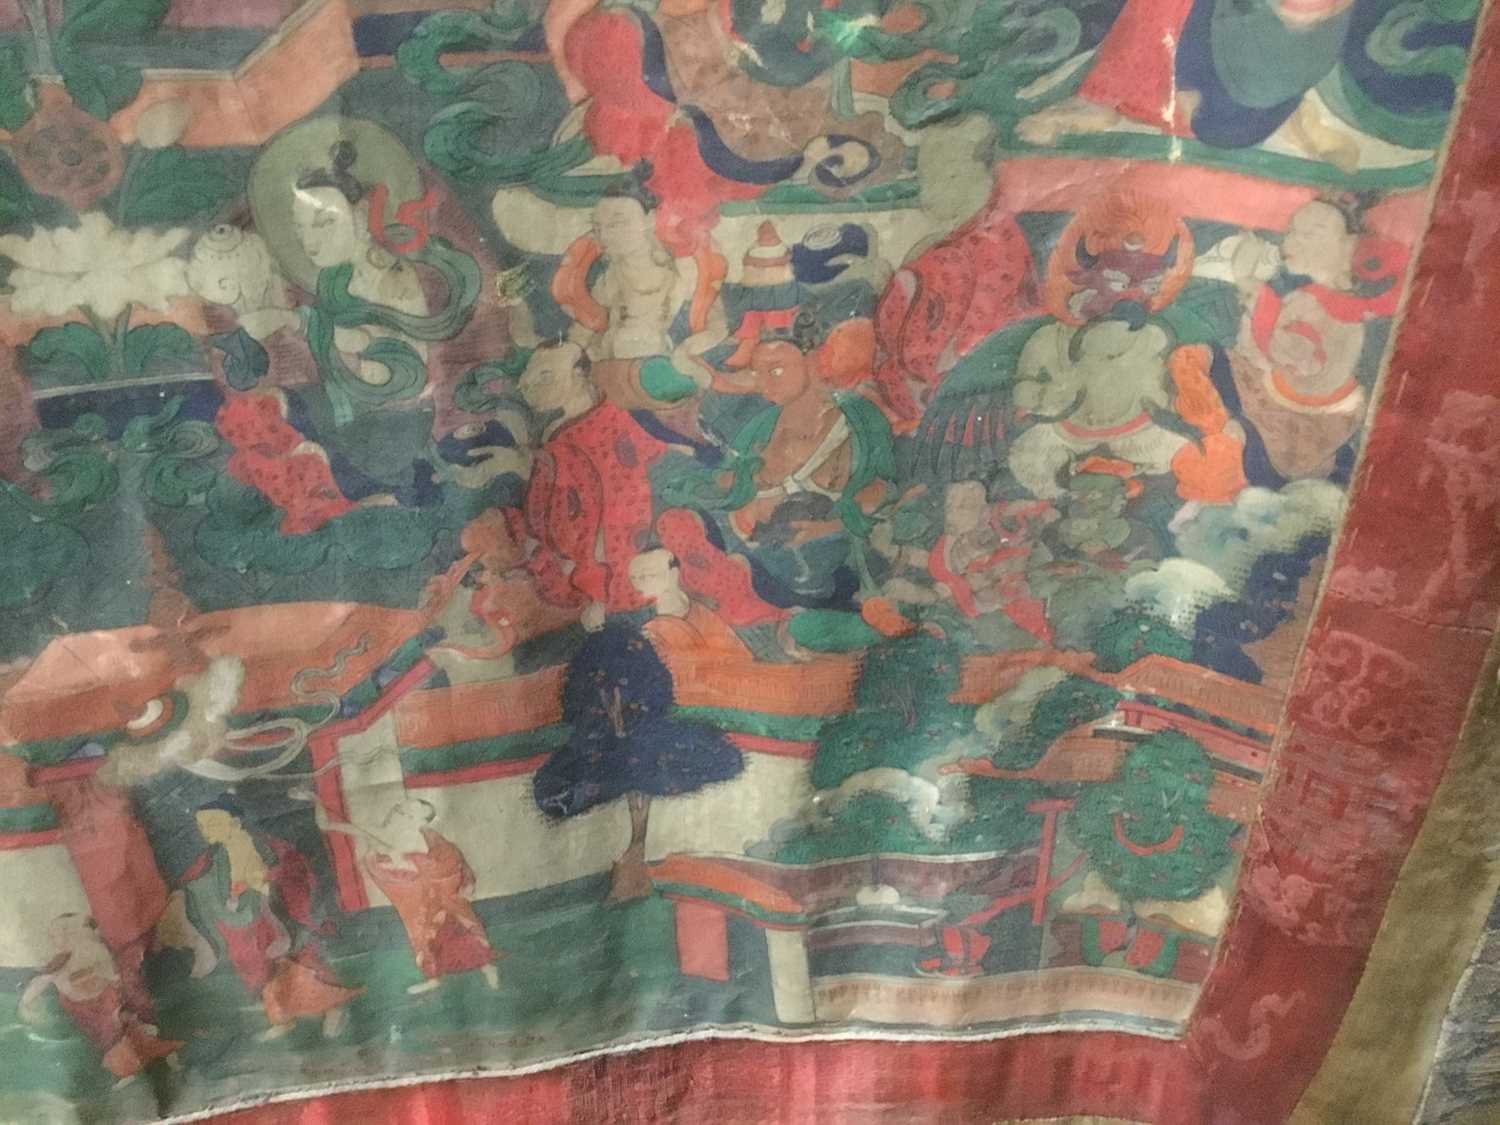 Early Tibetan thangka together with a related framed letter - Image 10 of 14